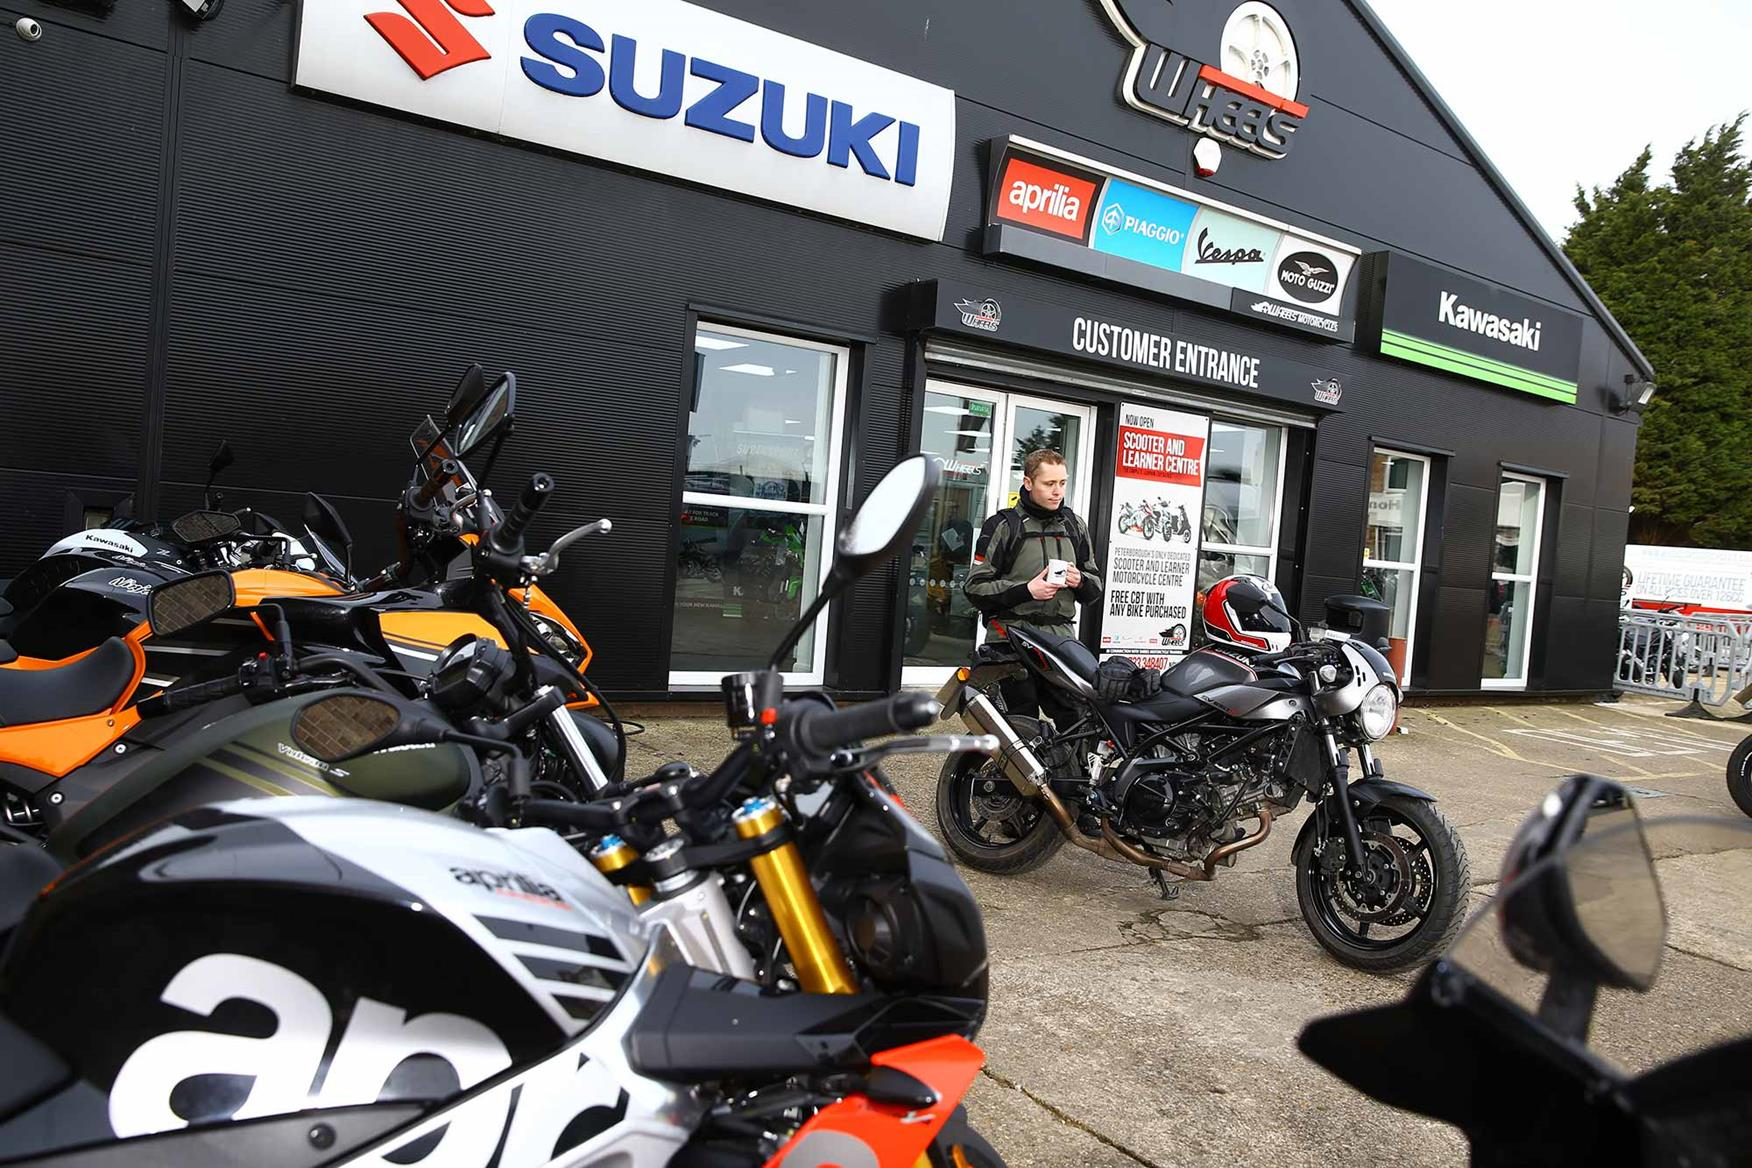 Dan looks over the Suzuki SV650X with a coffee